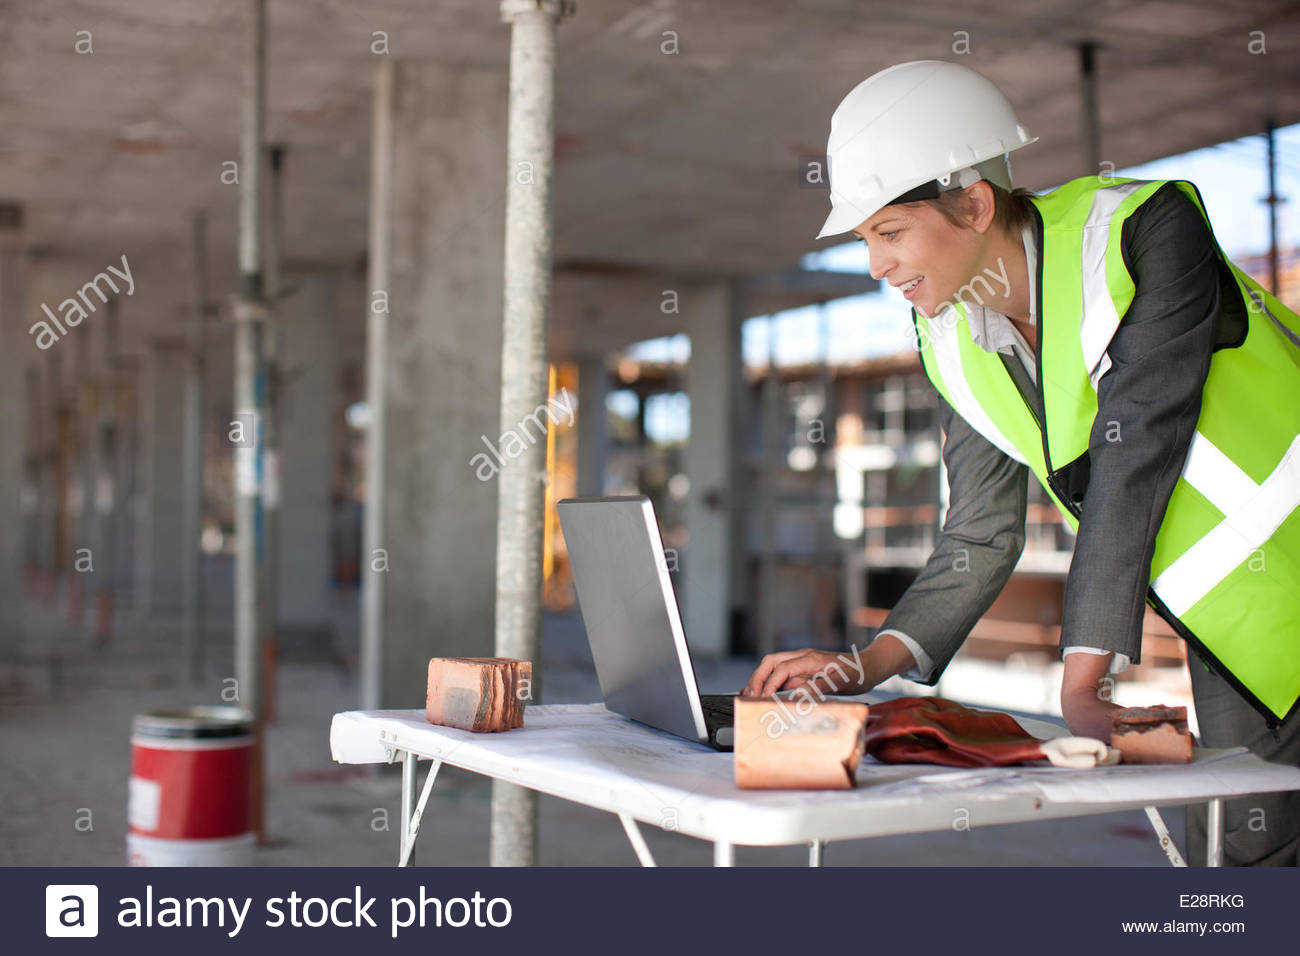 Construction worker using laptop on construction site - Stock Image